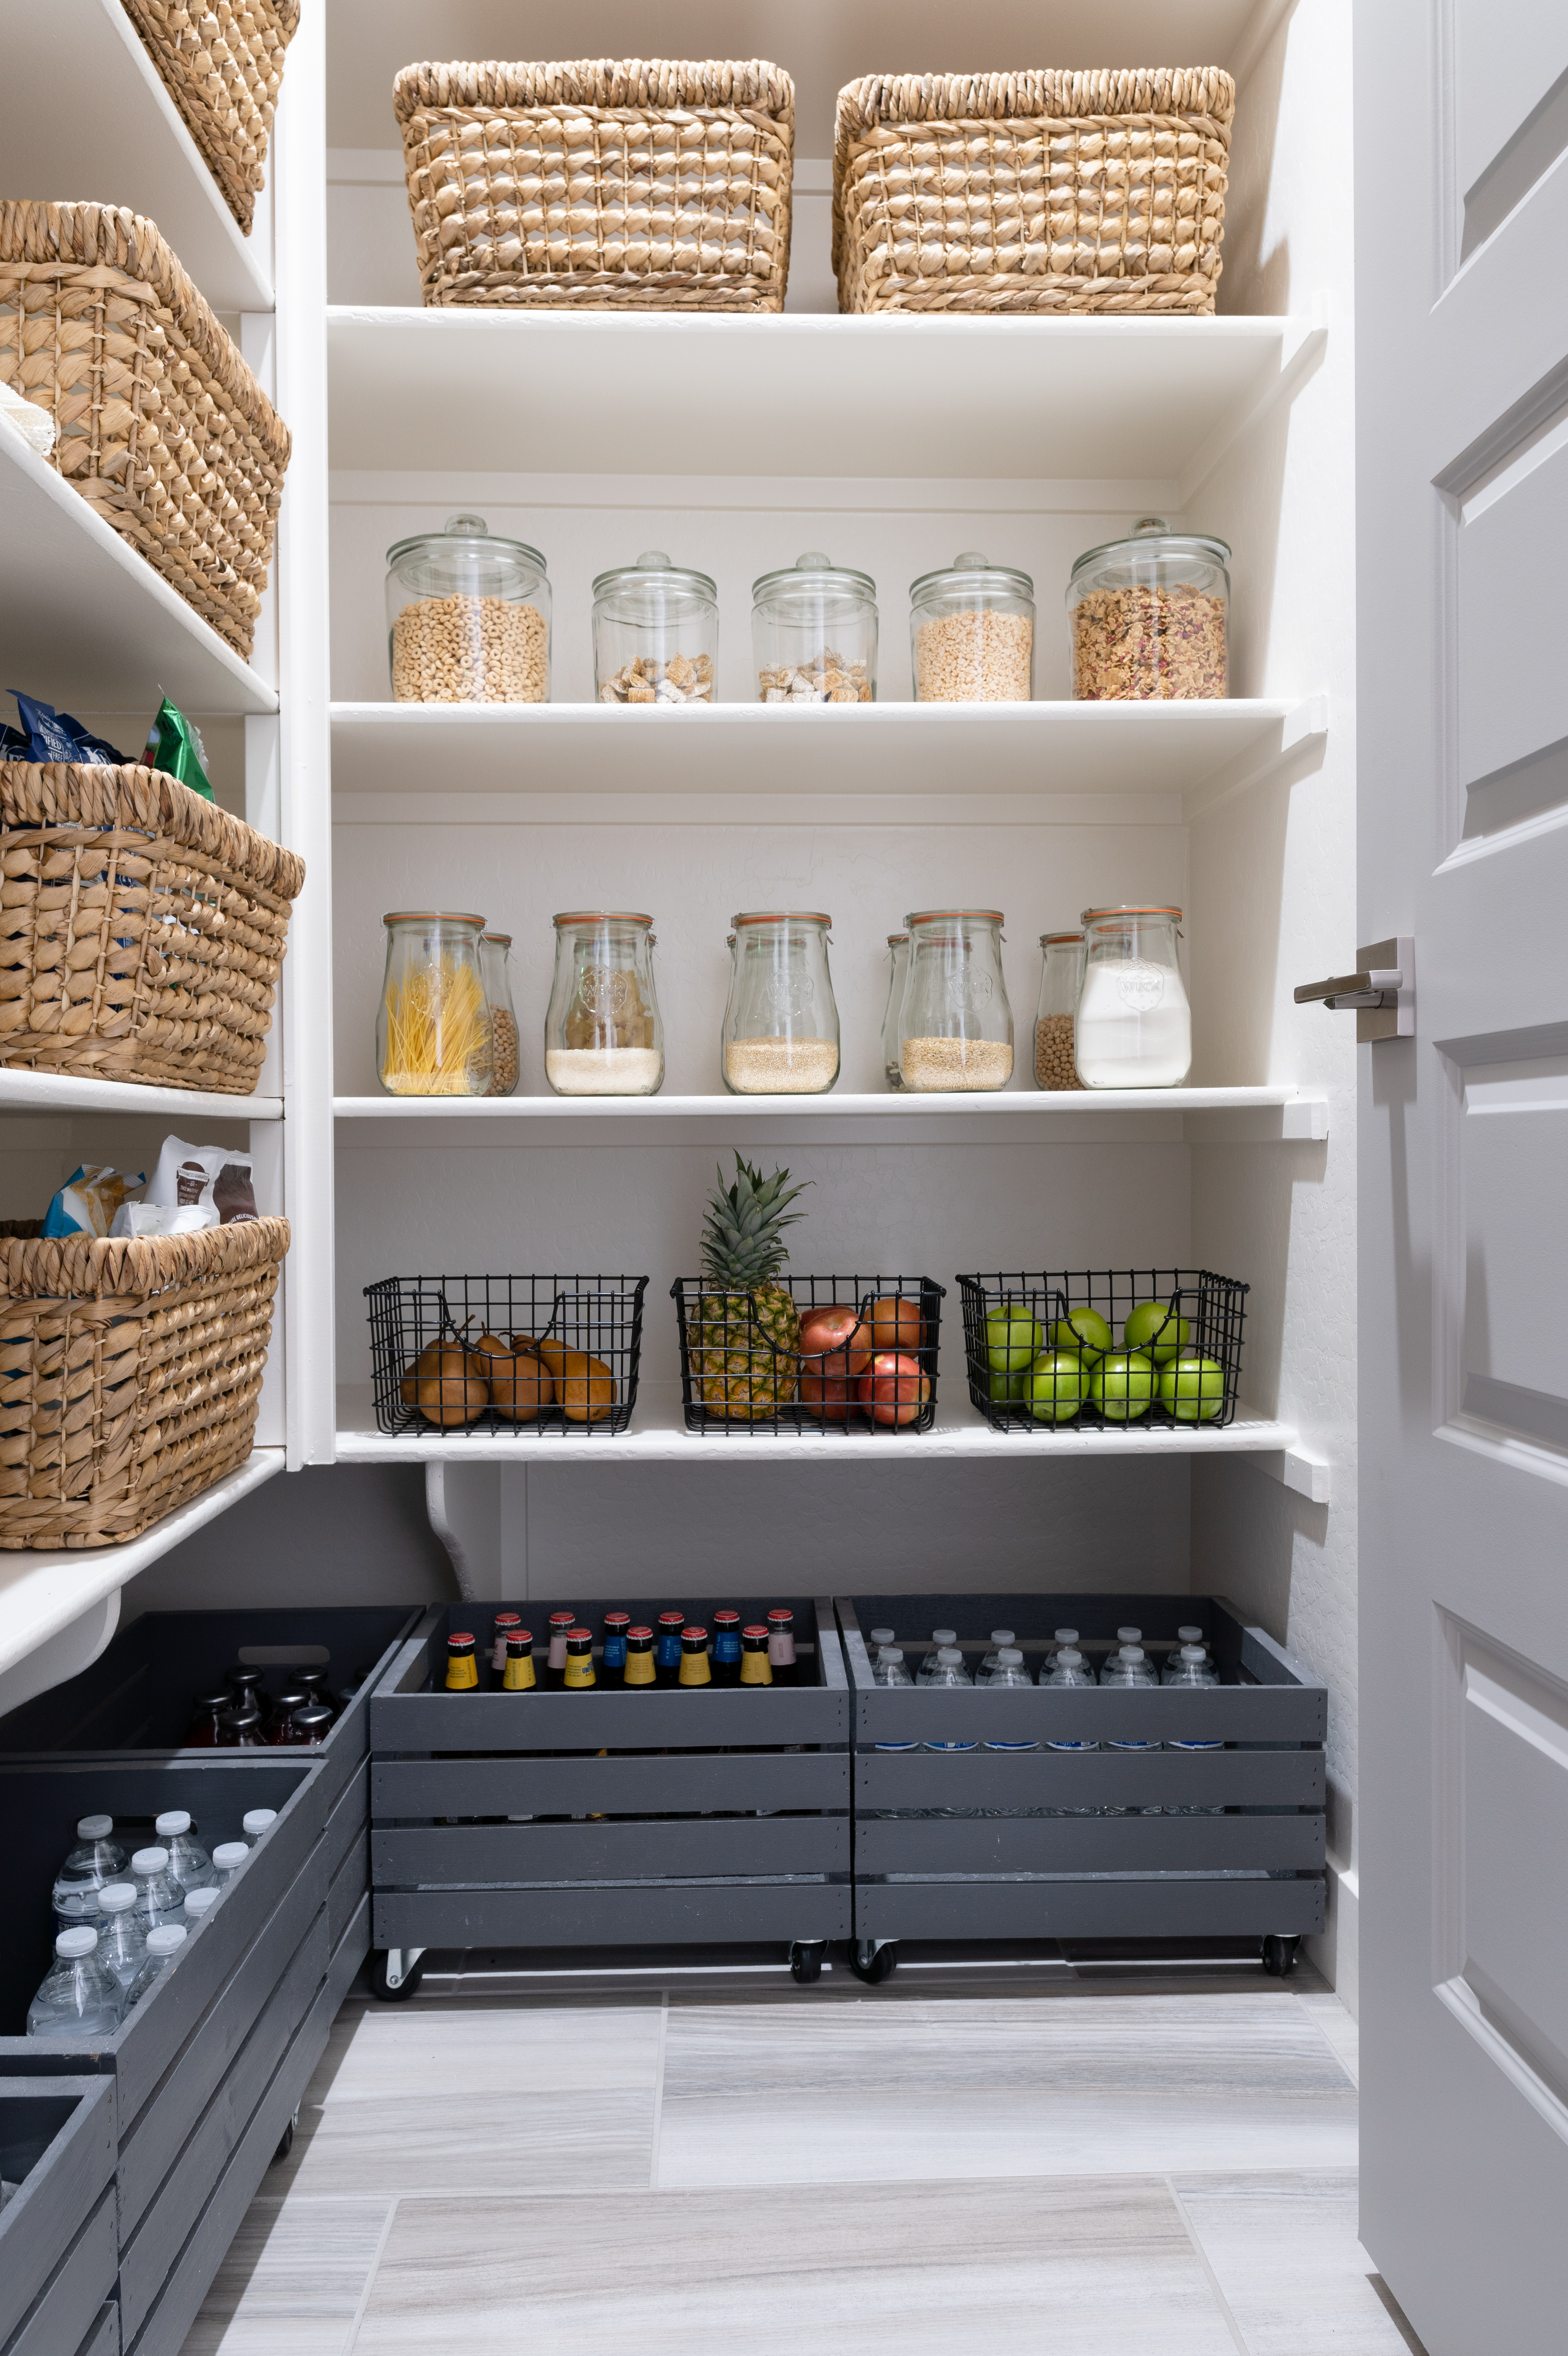 glass jars, black wire baskets and black wooden crates